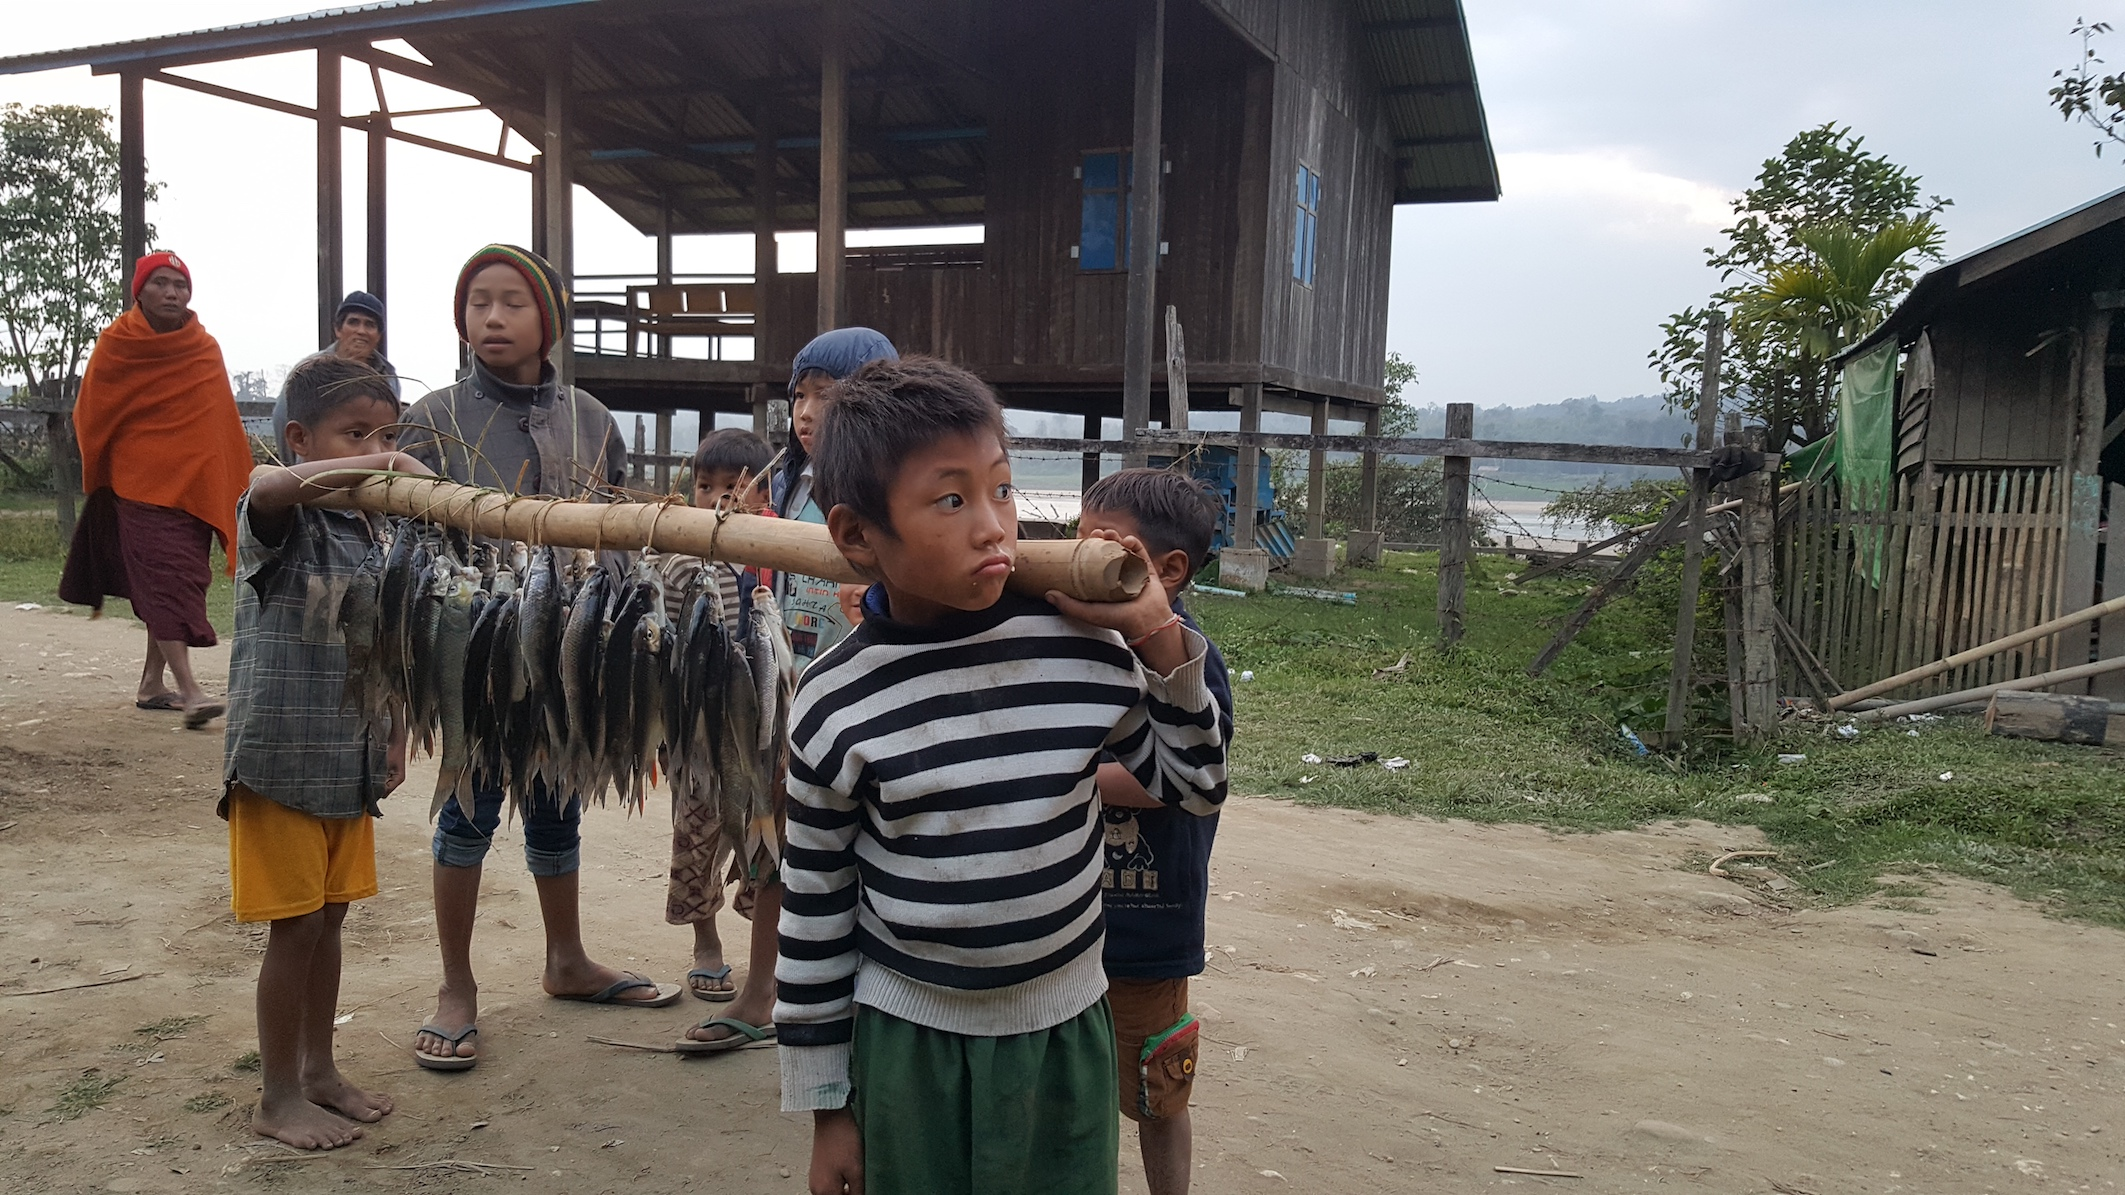 Kids selling fish Chindwin River Myanmar